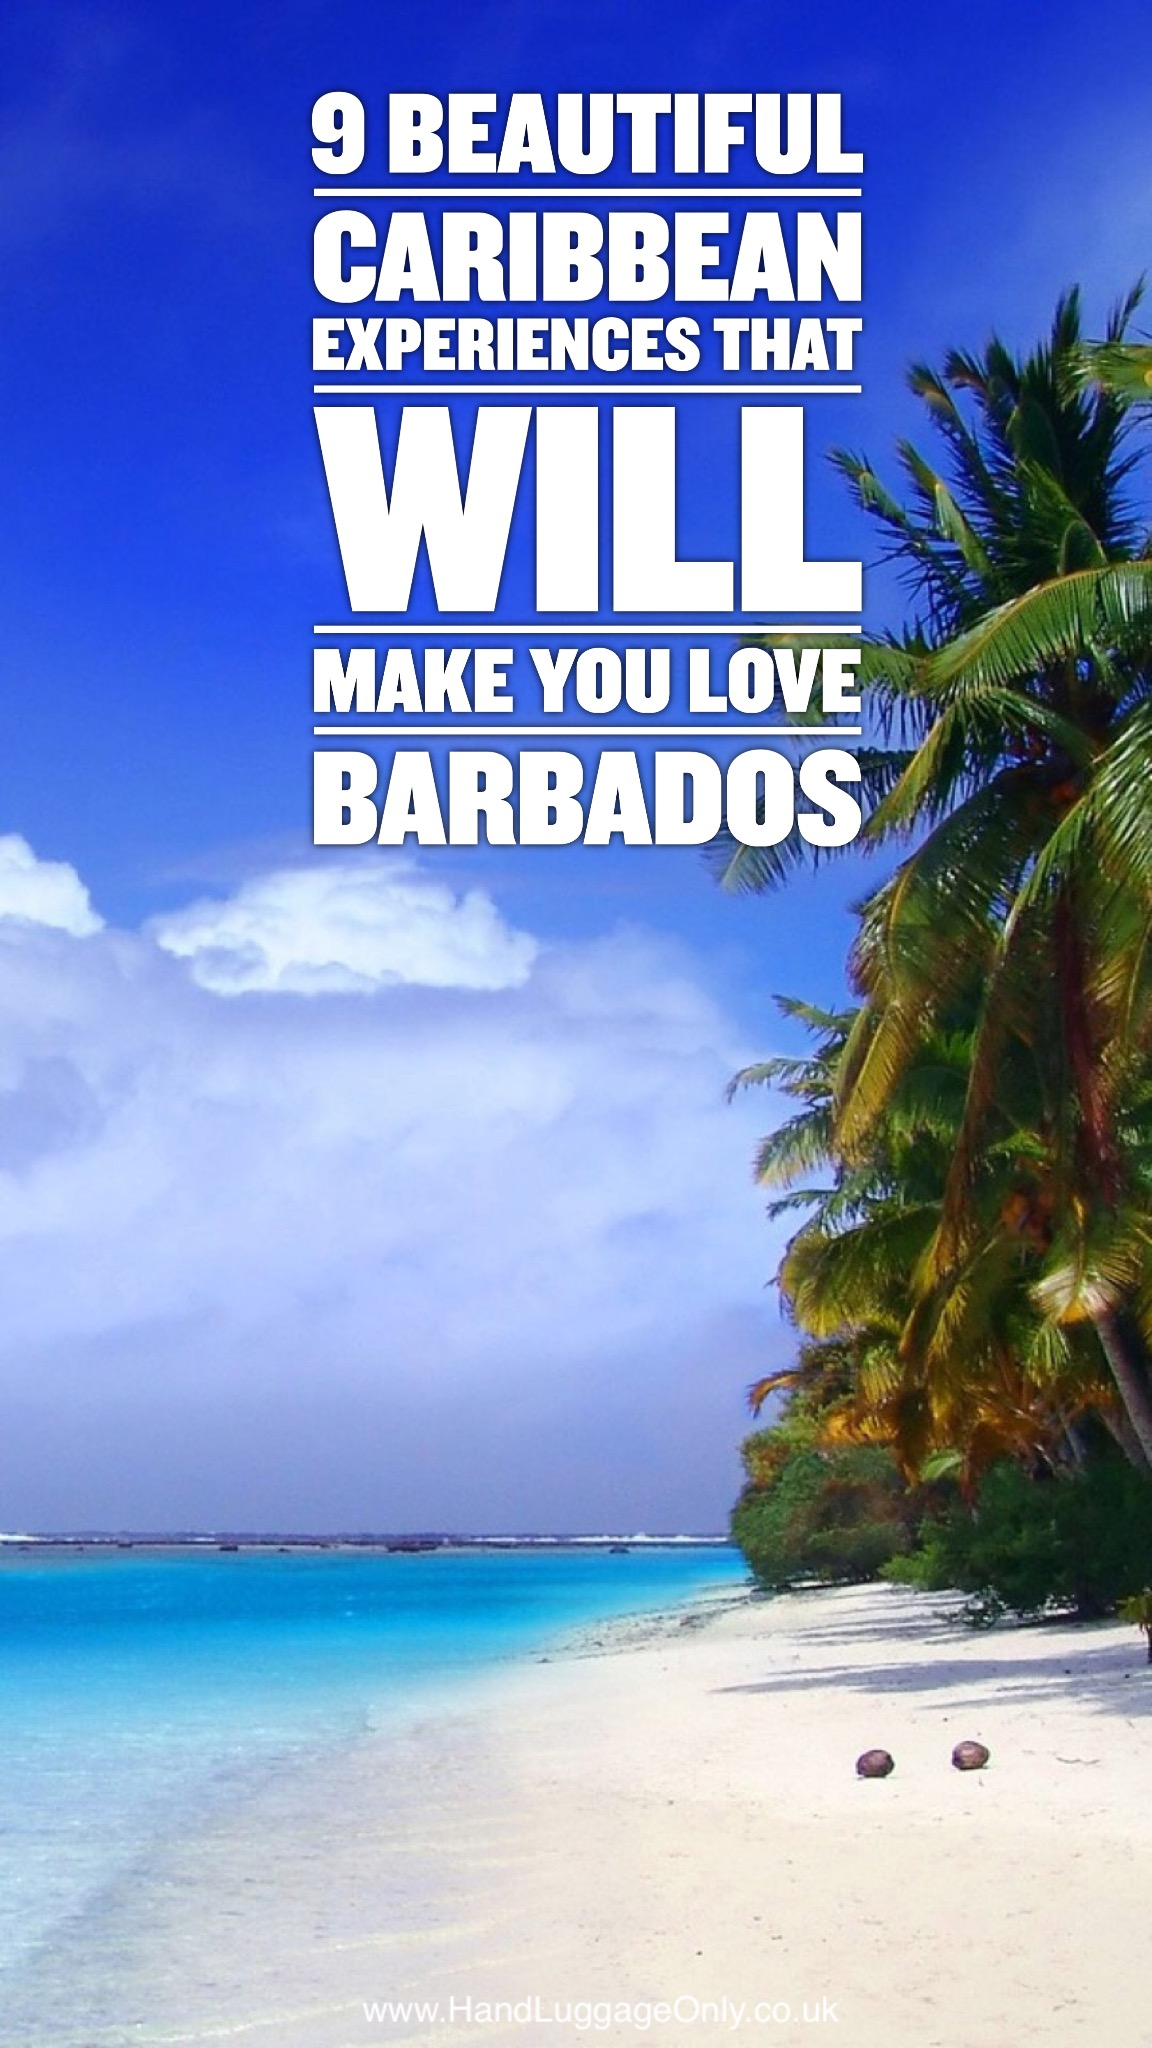 9 Caribbean Experiences To Have In Barbados